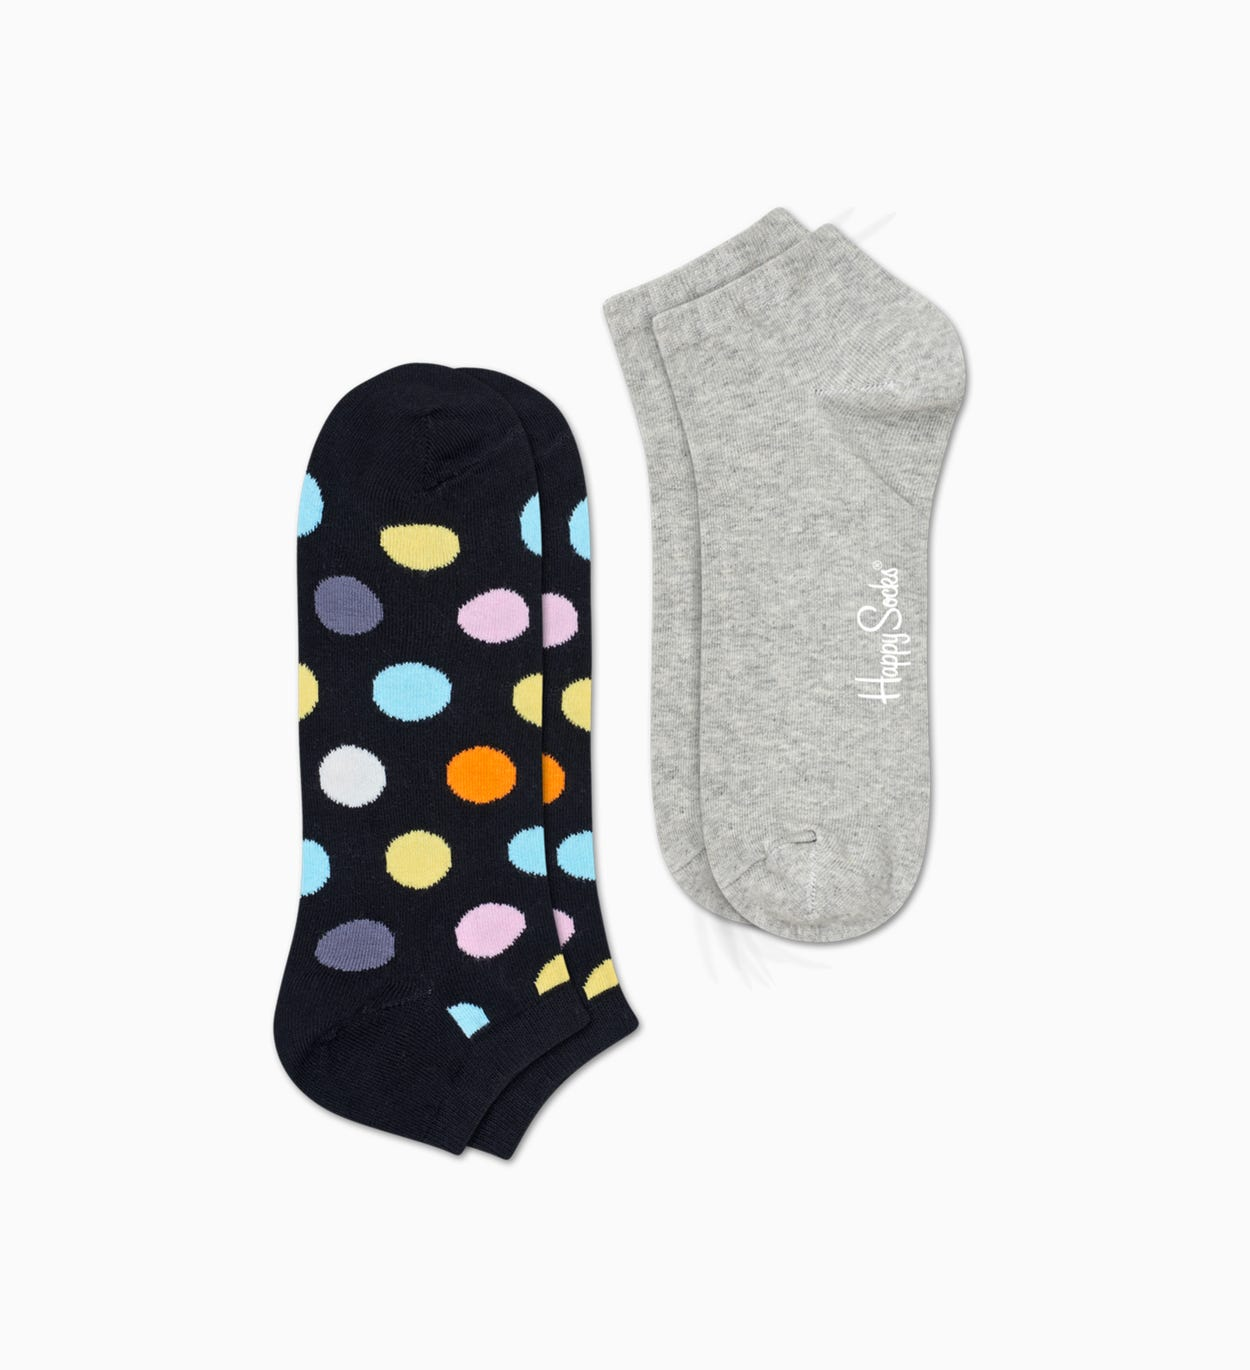 Black   Gray low socks 2pc: Big Dot | Happy Socks